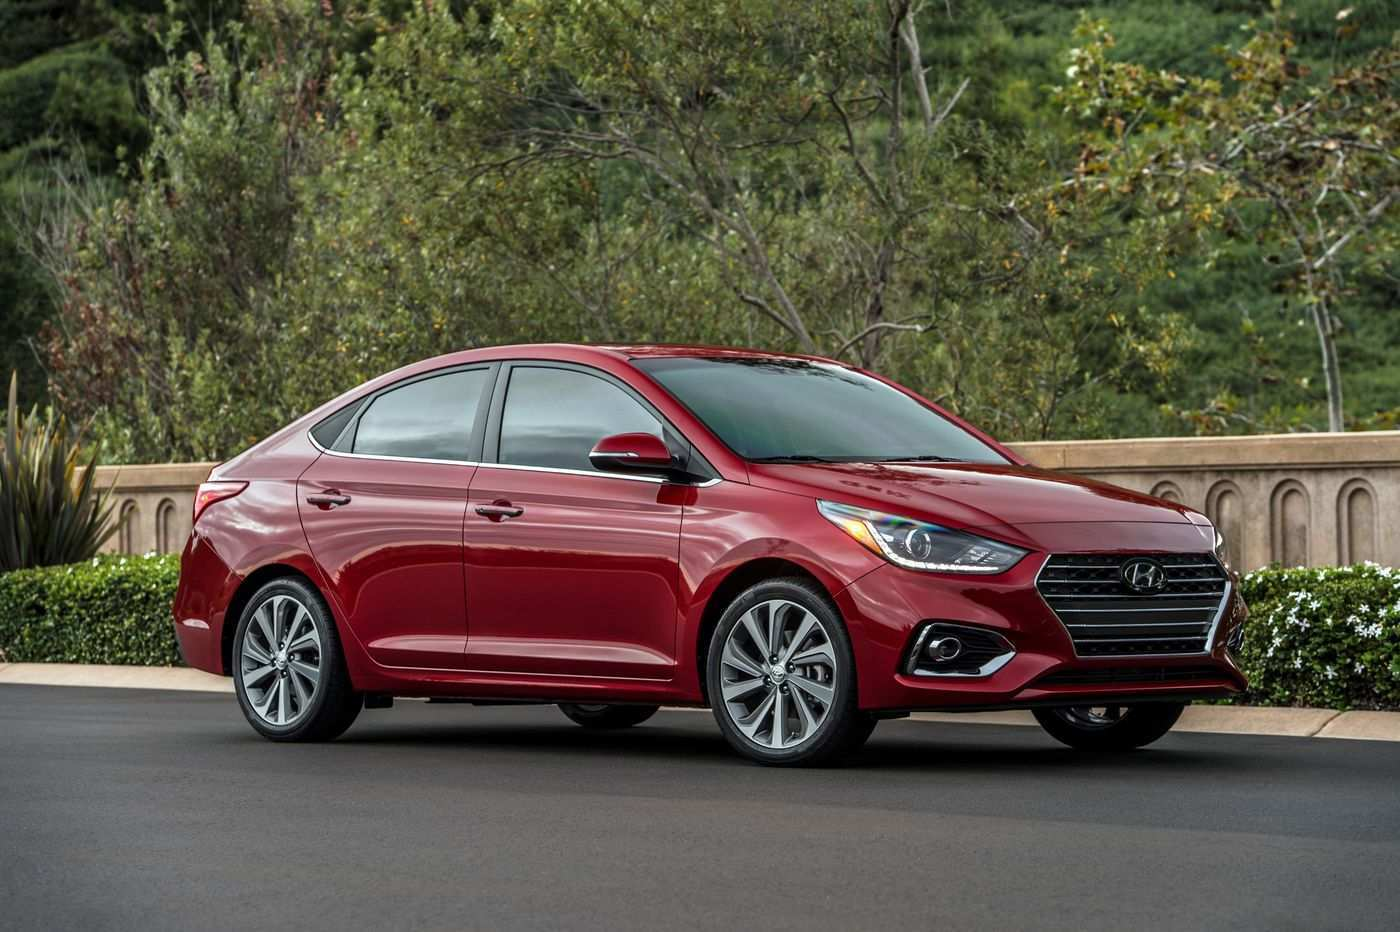 85 The Best 2019 Hyundai Accent Hatchback Specs